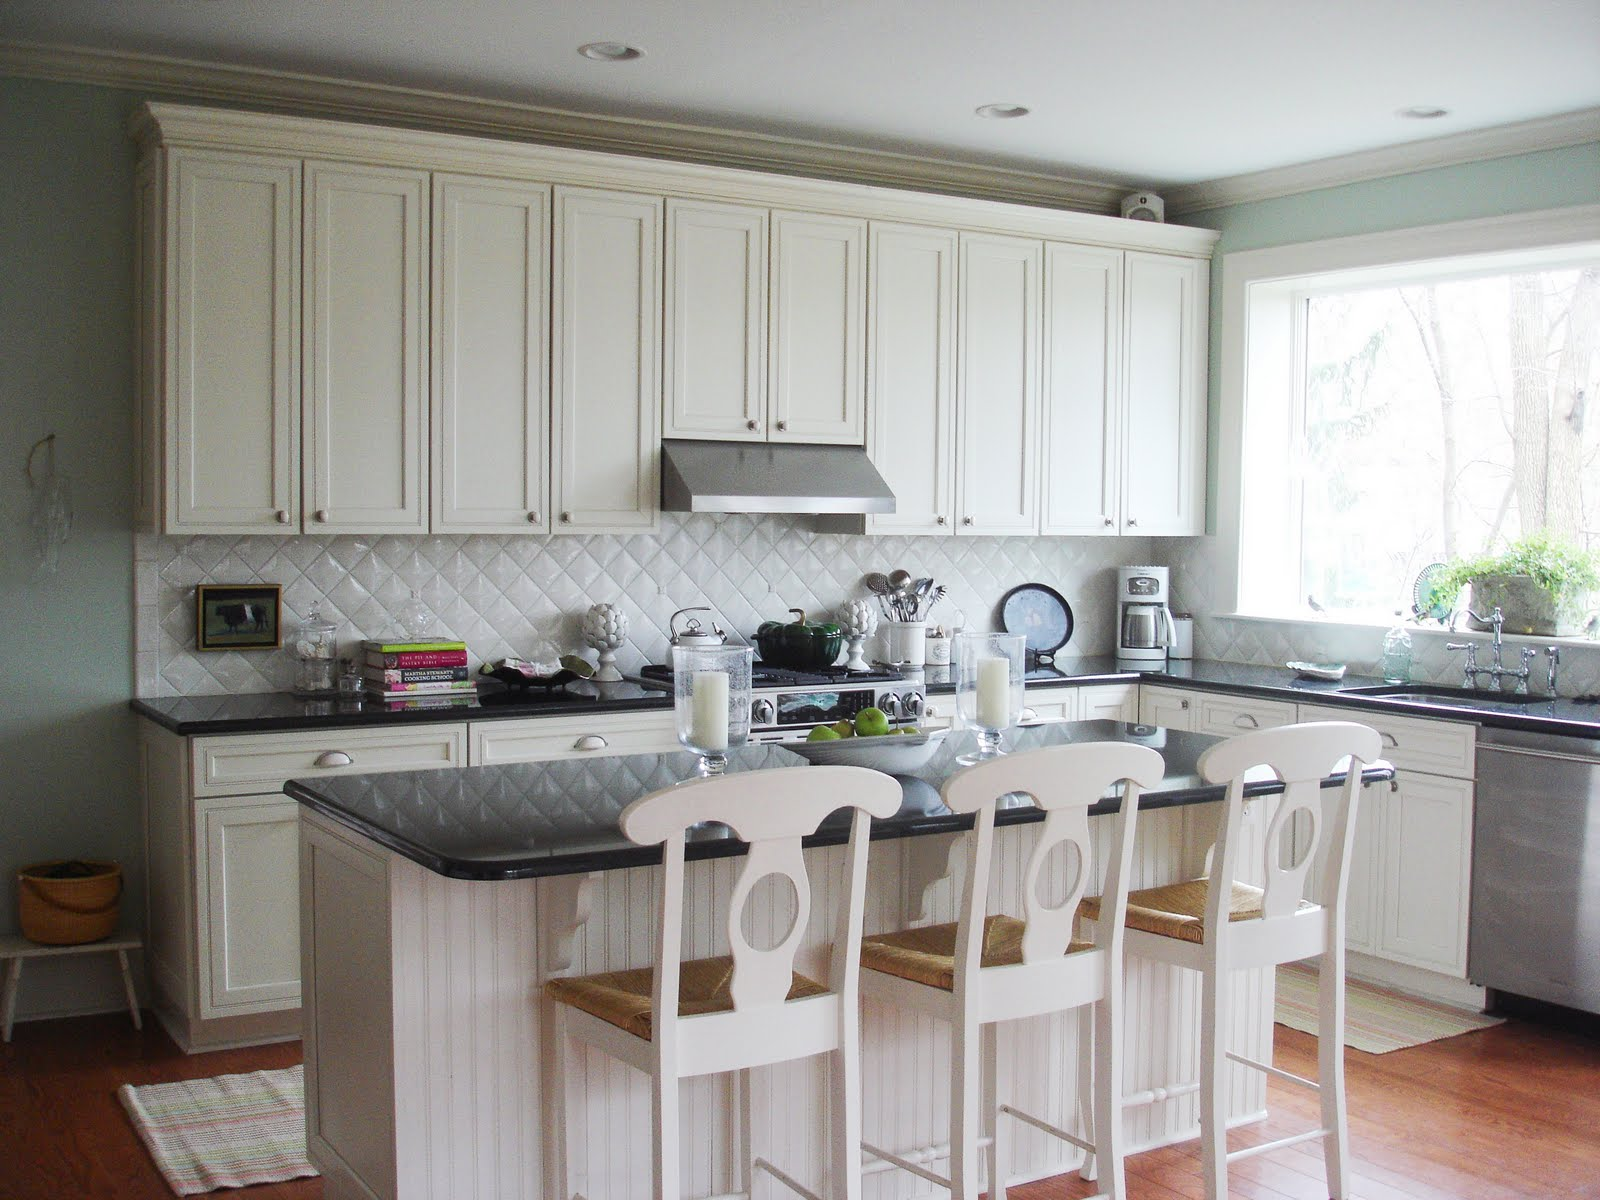 Leslie S Lovely Baltimore Md Kitchen Is In A Renovated 1904 Home And Features Black Granite Counters Italian Pillowed Crackled Square Tile Backsplash